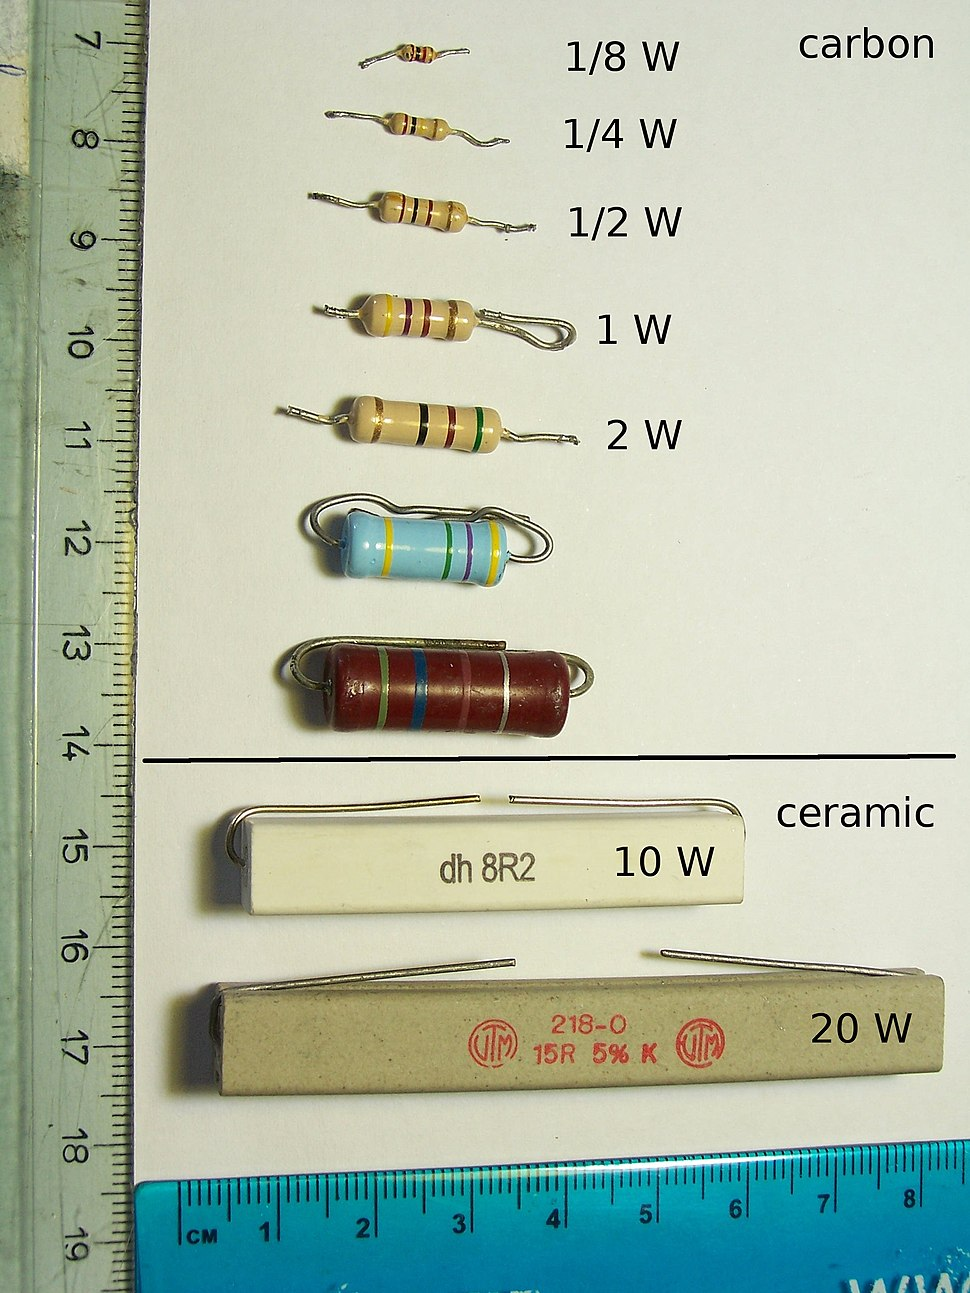 Carbon and ceramic resistors of different power ratings